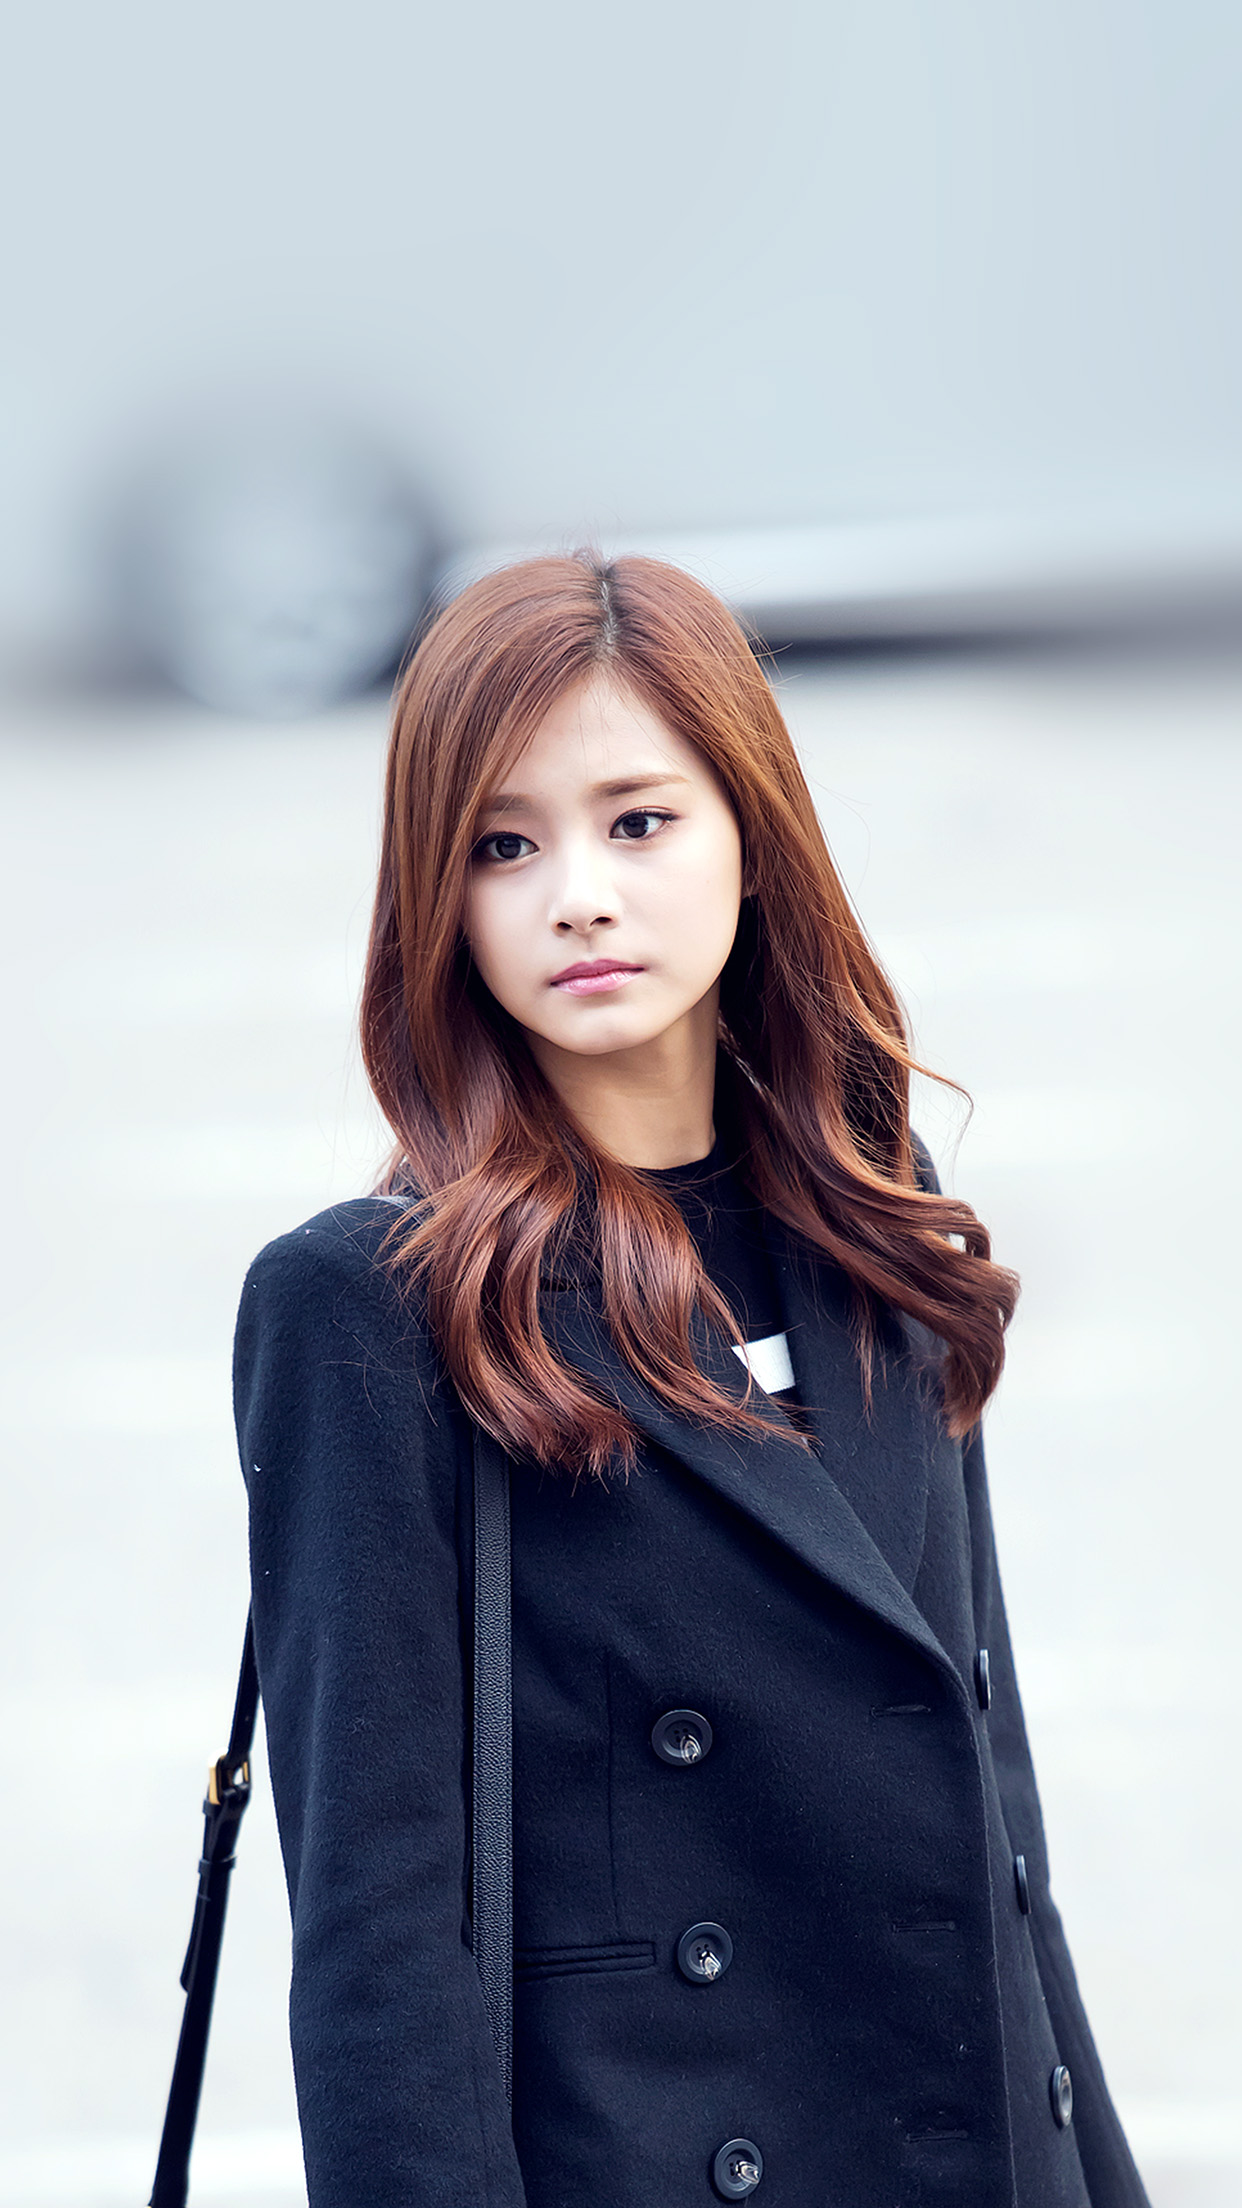 Cute Girl Wallpaper For Iphone 6 Hh35 Tzuyu Twice Smile Cute Kpop Chinese Papers Co